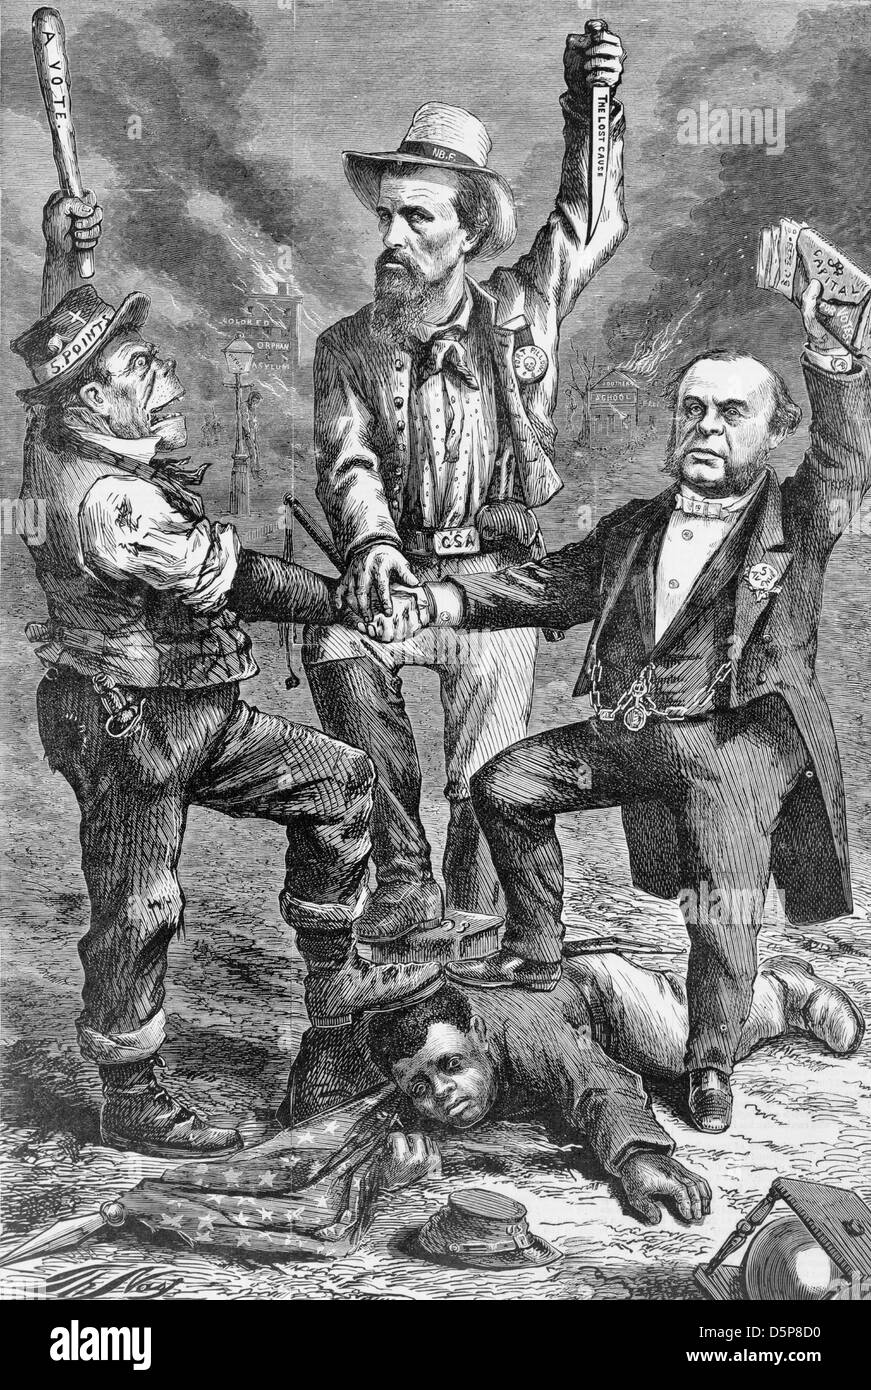 'This is a white man's government' 'We regard the Reconstruction Acts (so called) of Congress as - Stock Image